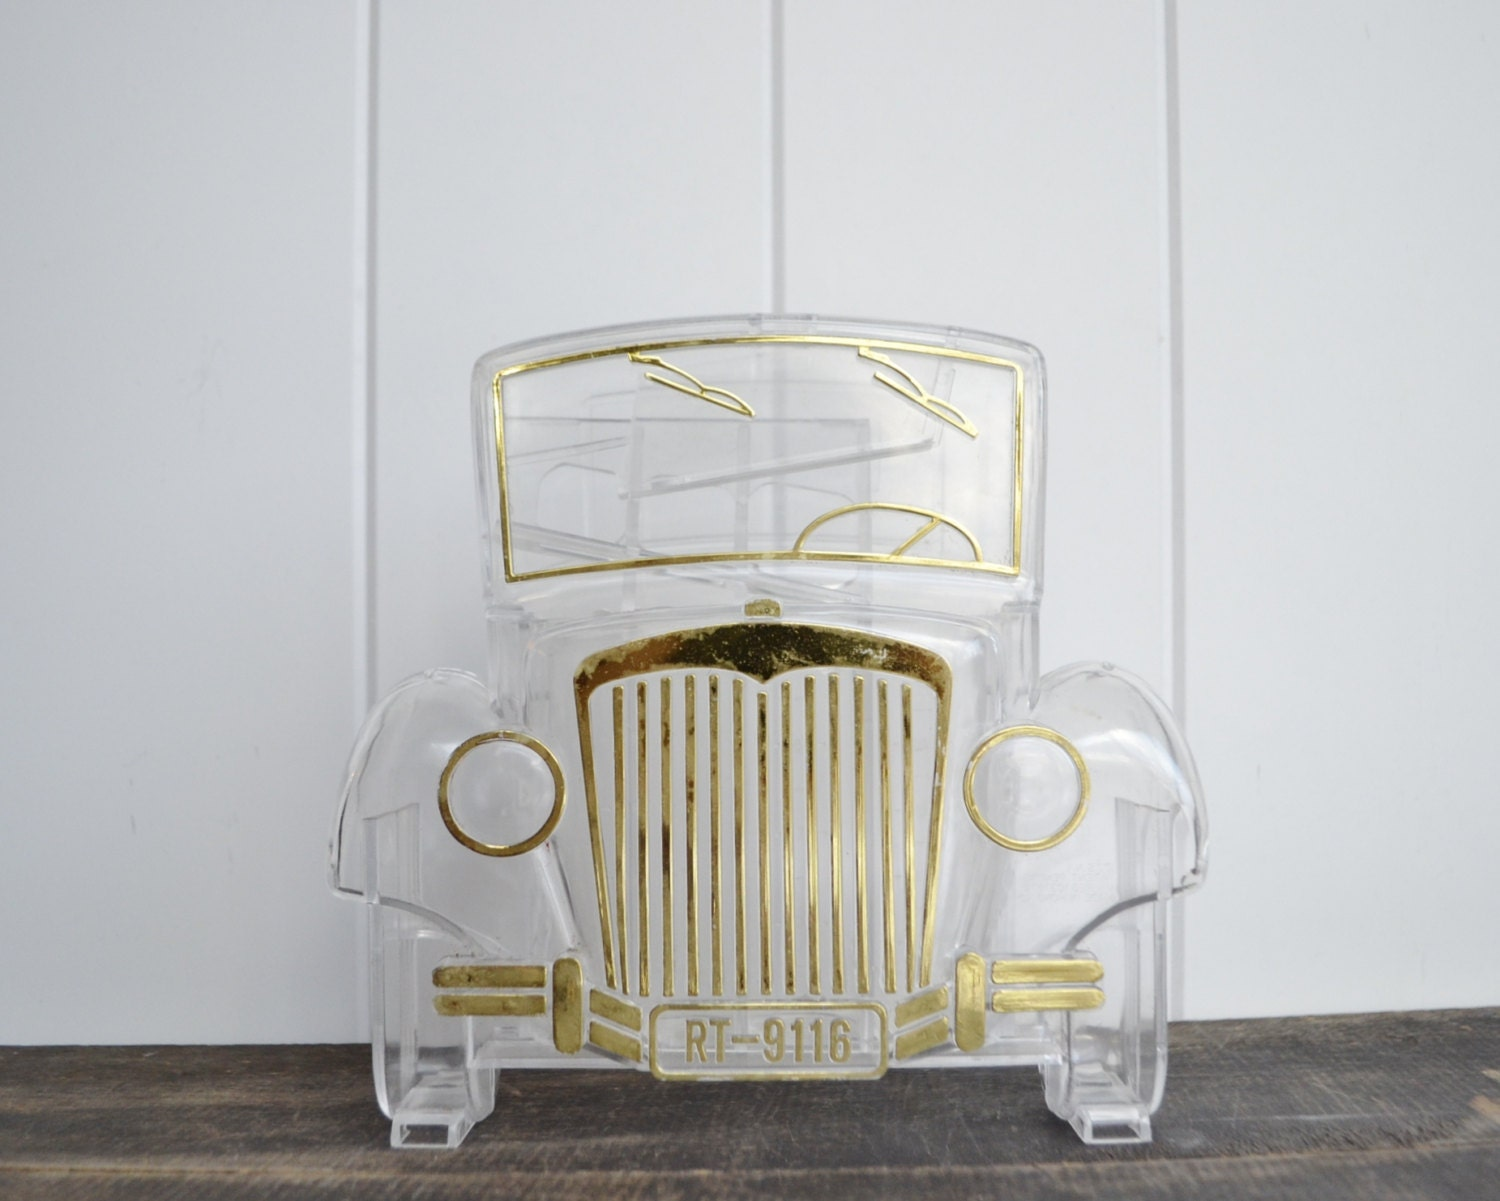 Coin sorter antique car decor clear plastic piggy bank to - Coin sorting piggy bank ...